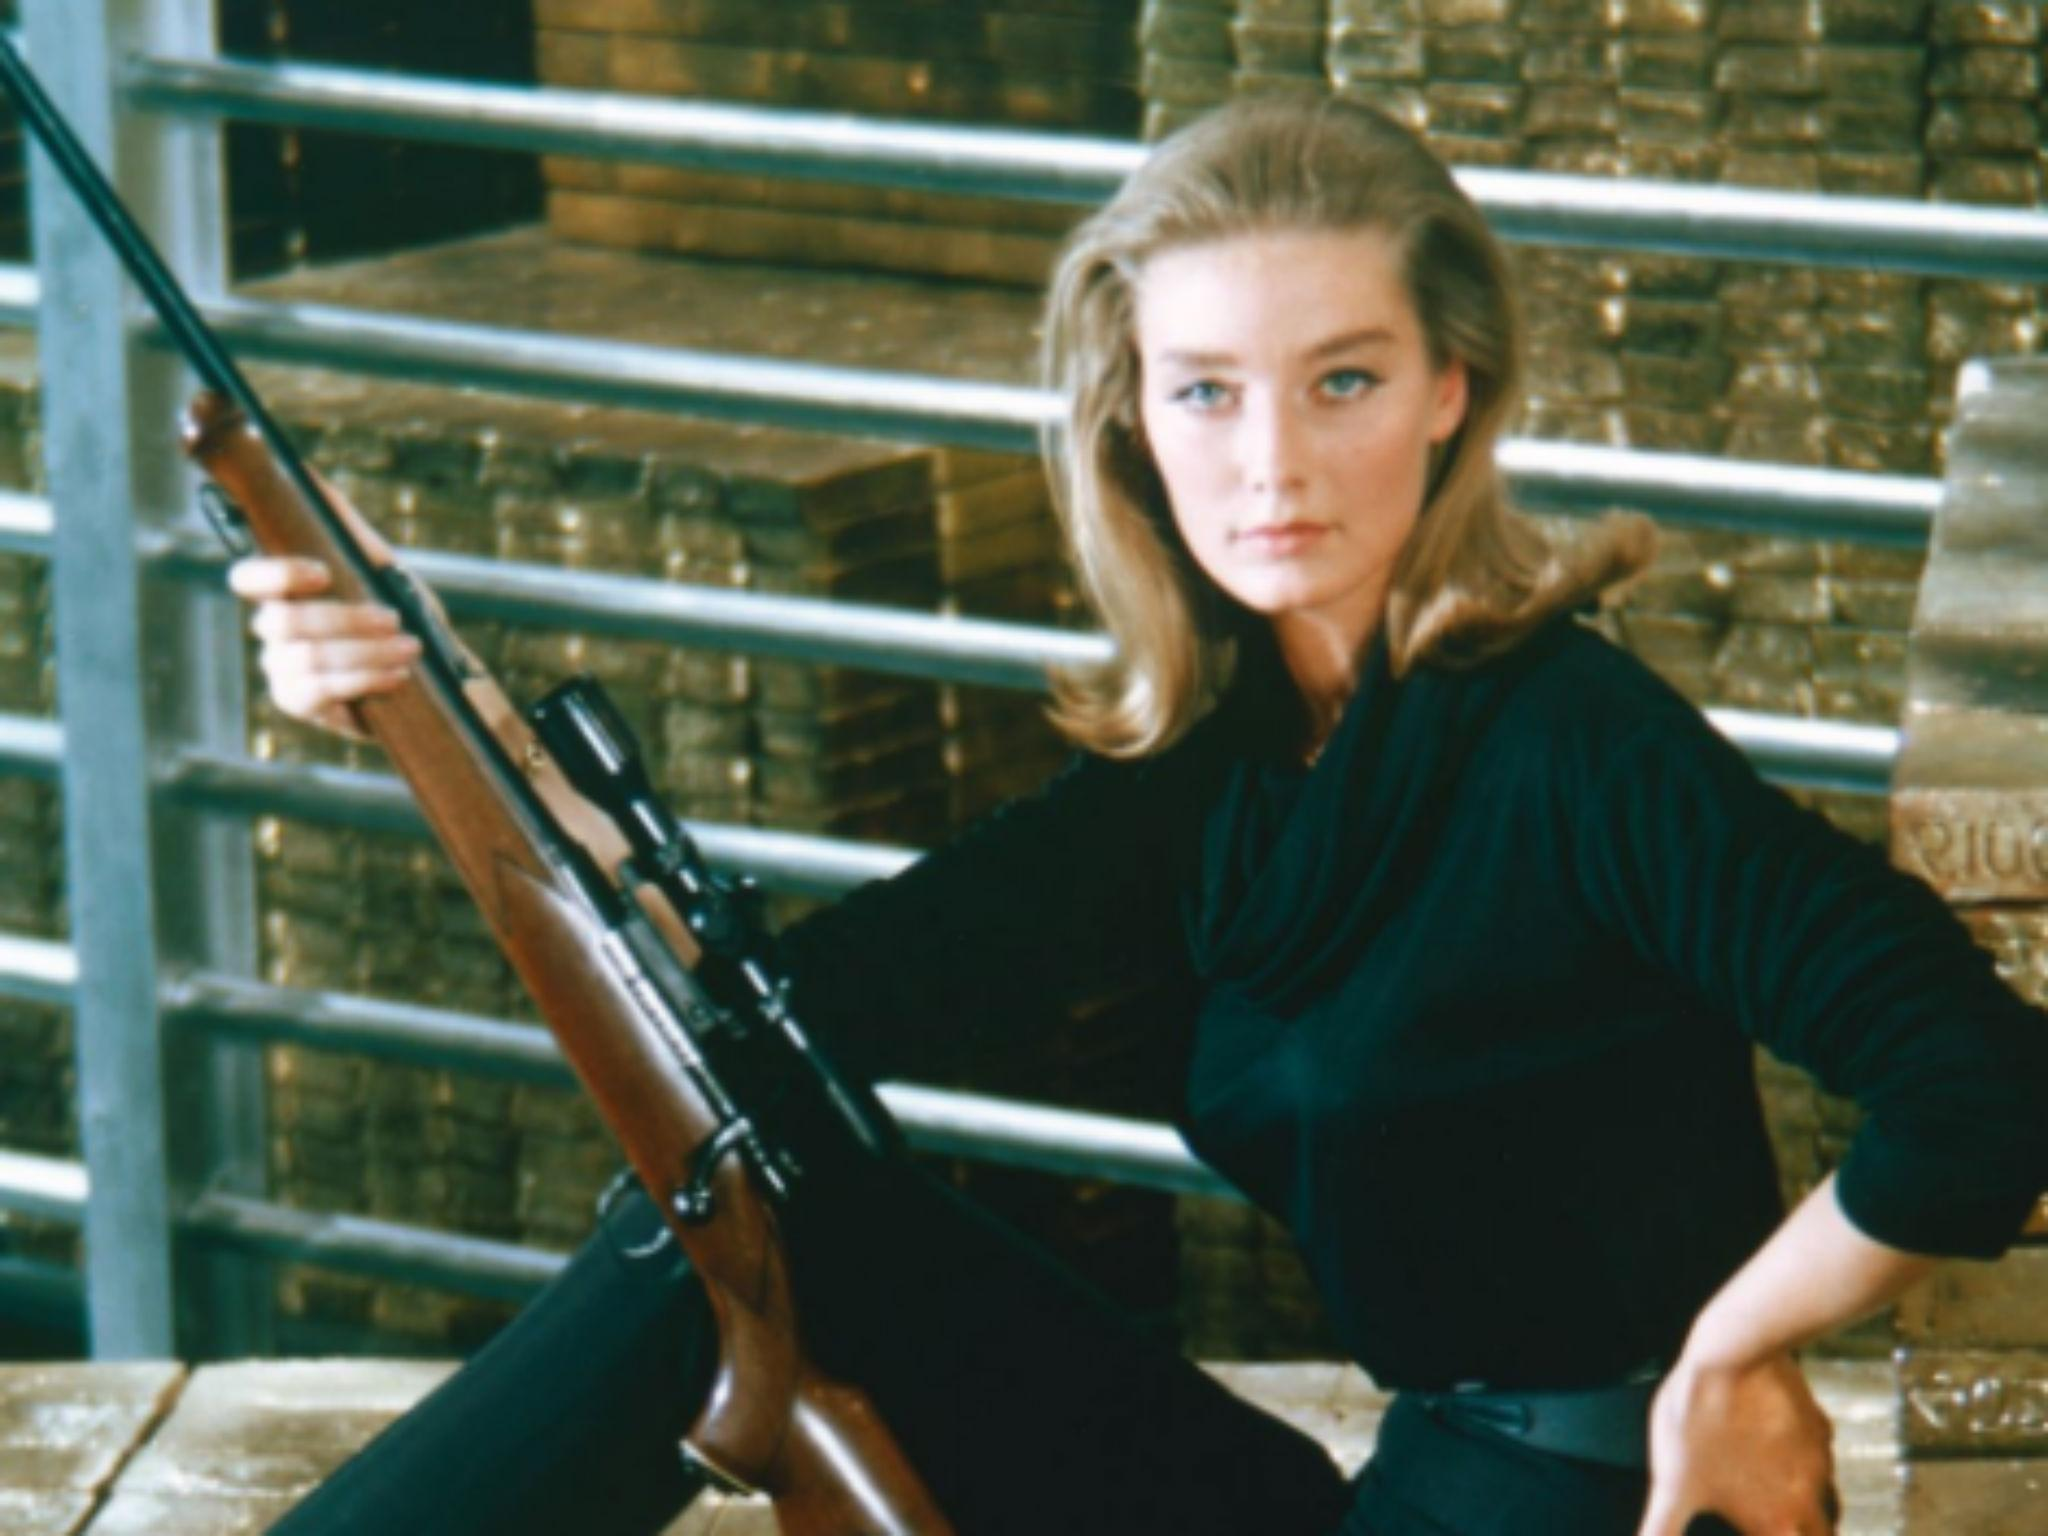 Tania Mallet death: Bond girl who starred in Goldfinger dies aged 77